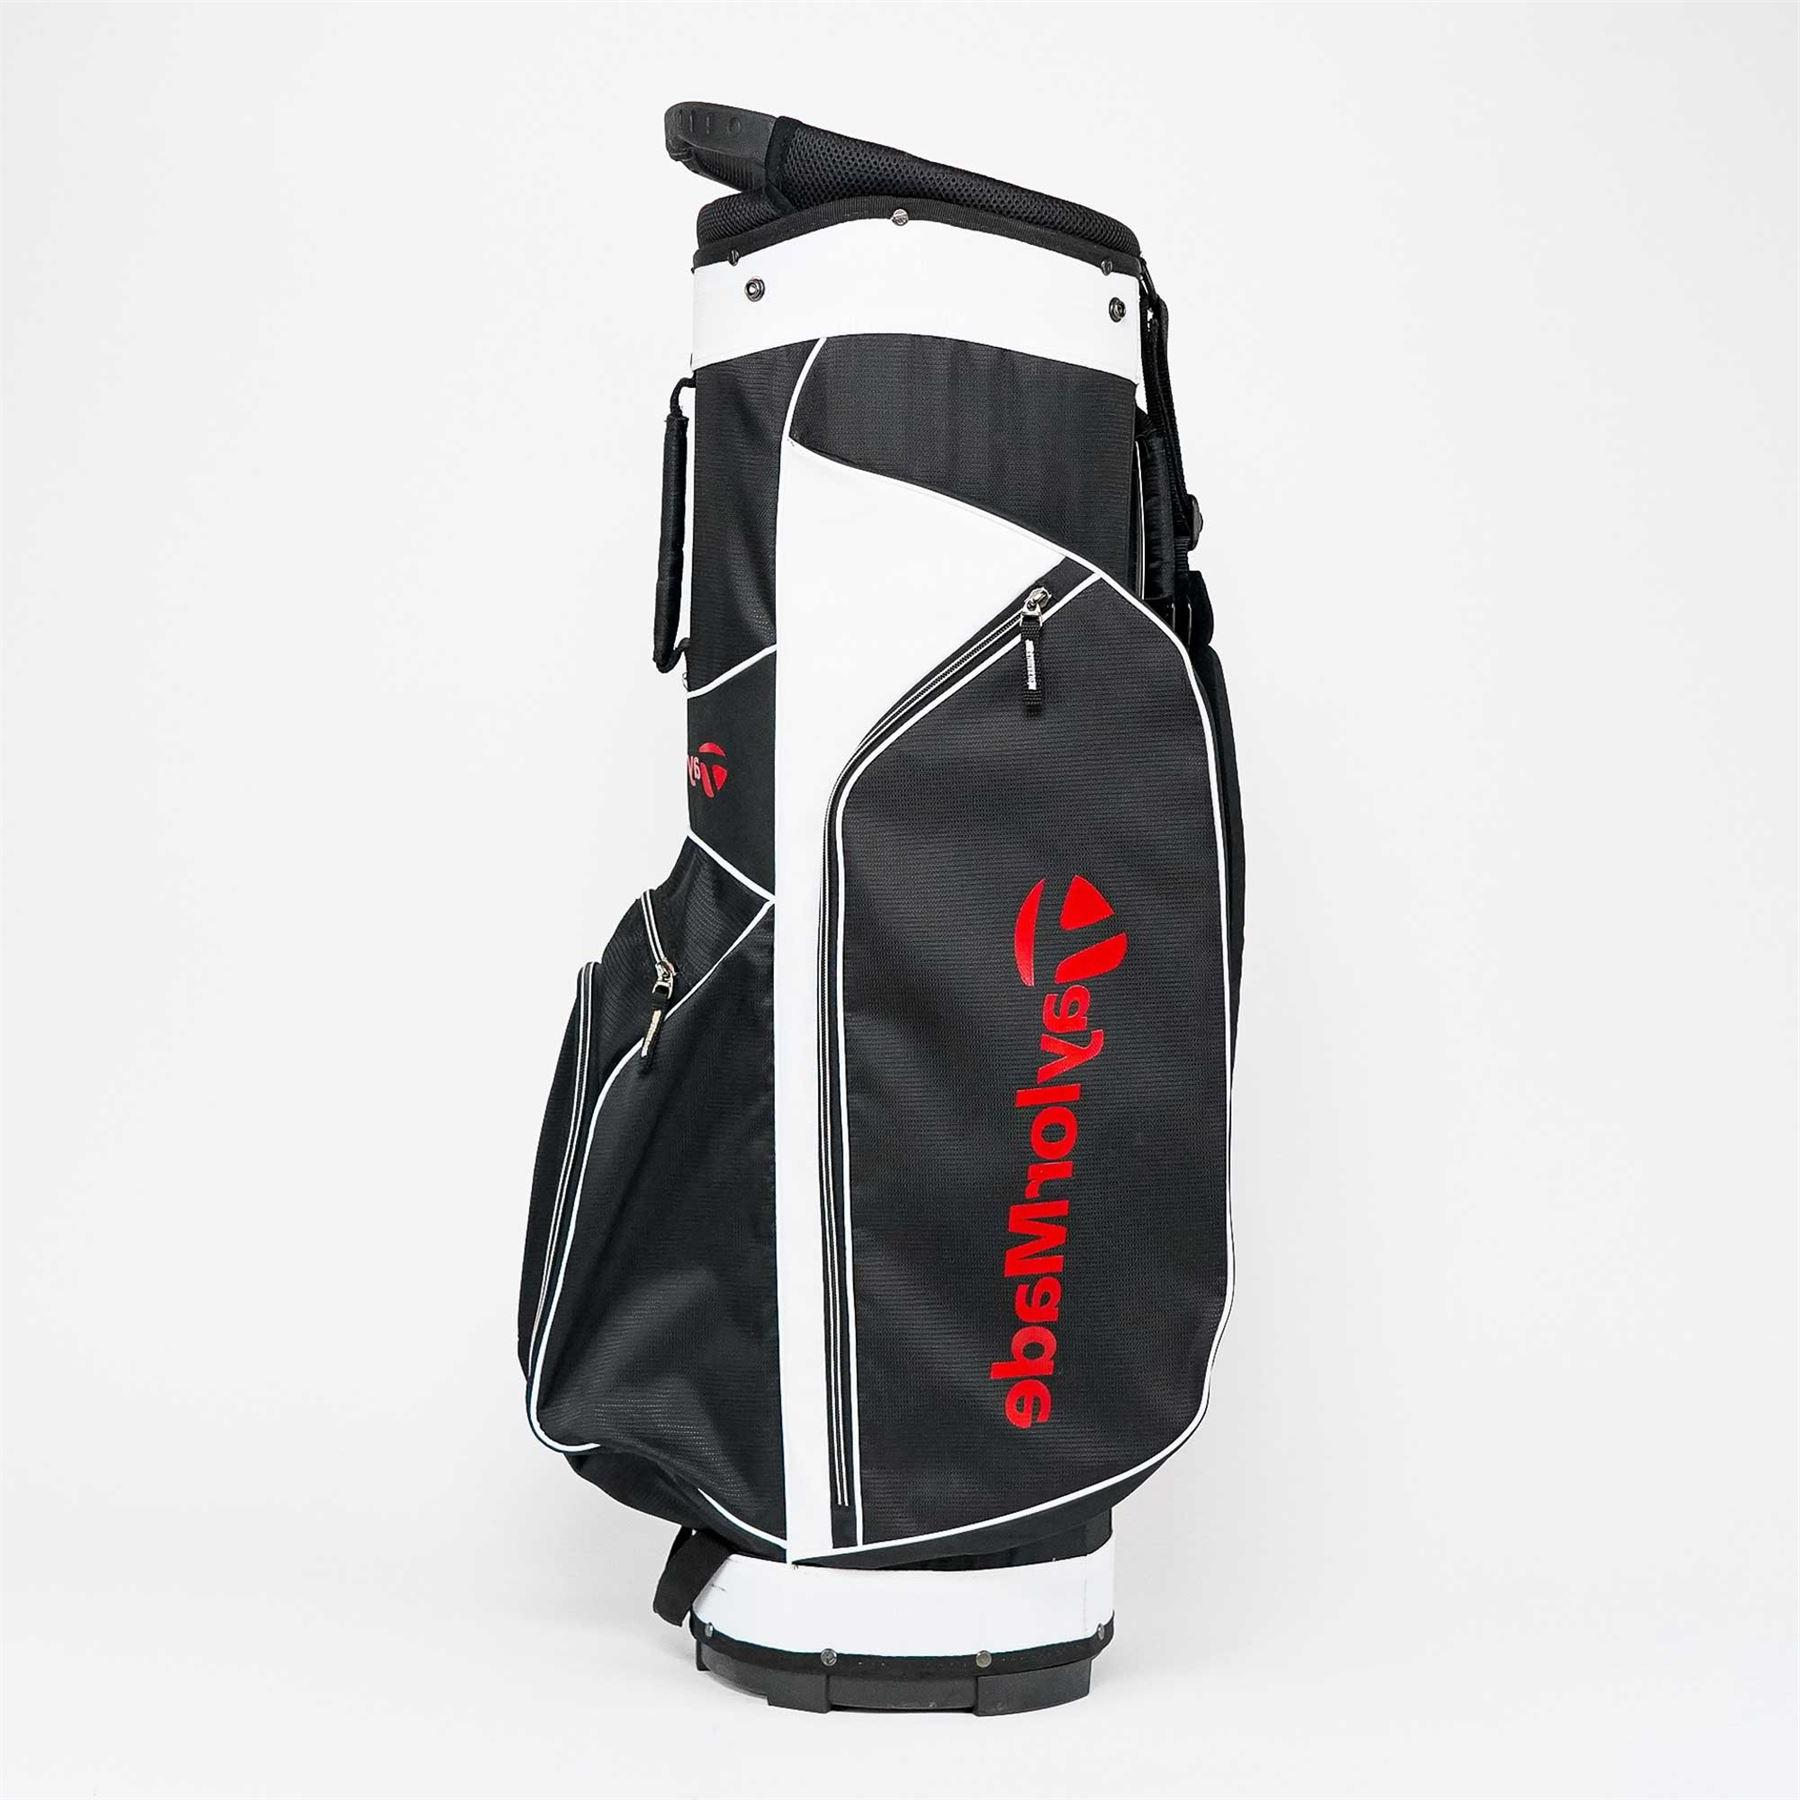 TaylorMade 5.0 Cart Bag Black/White/Red